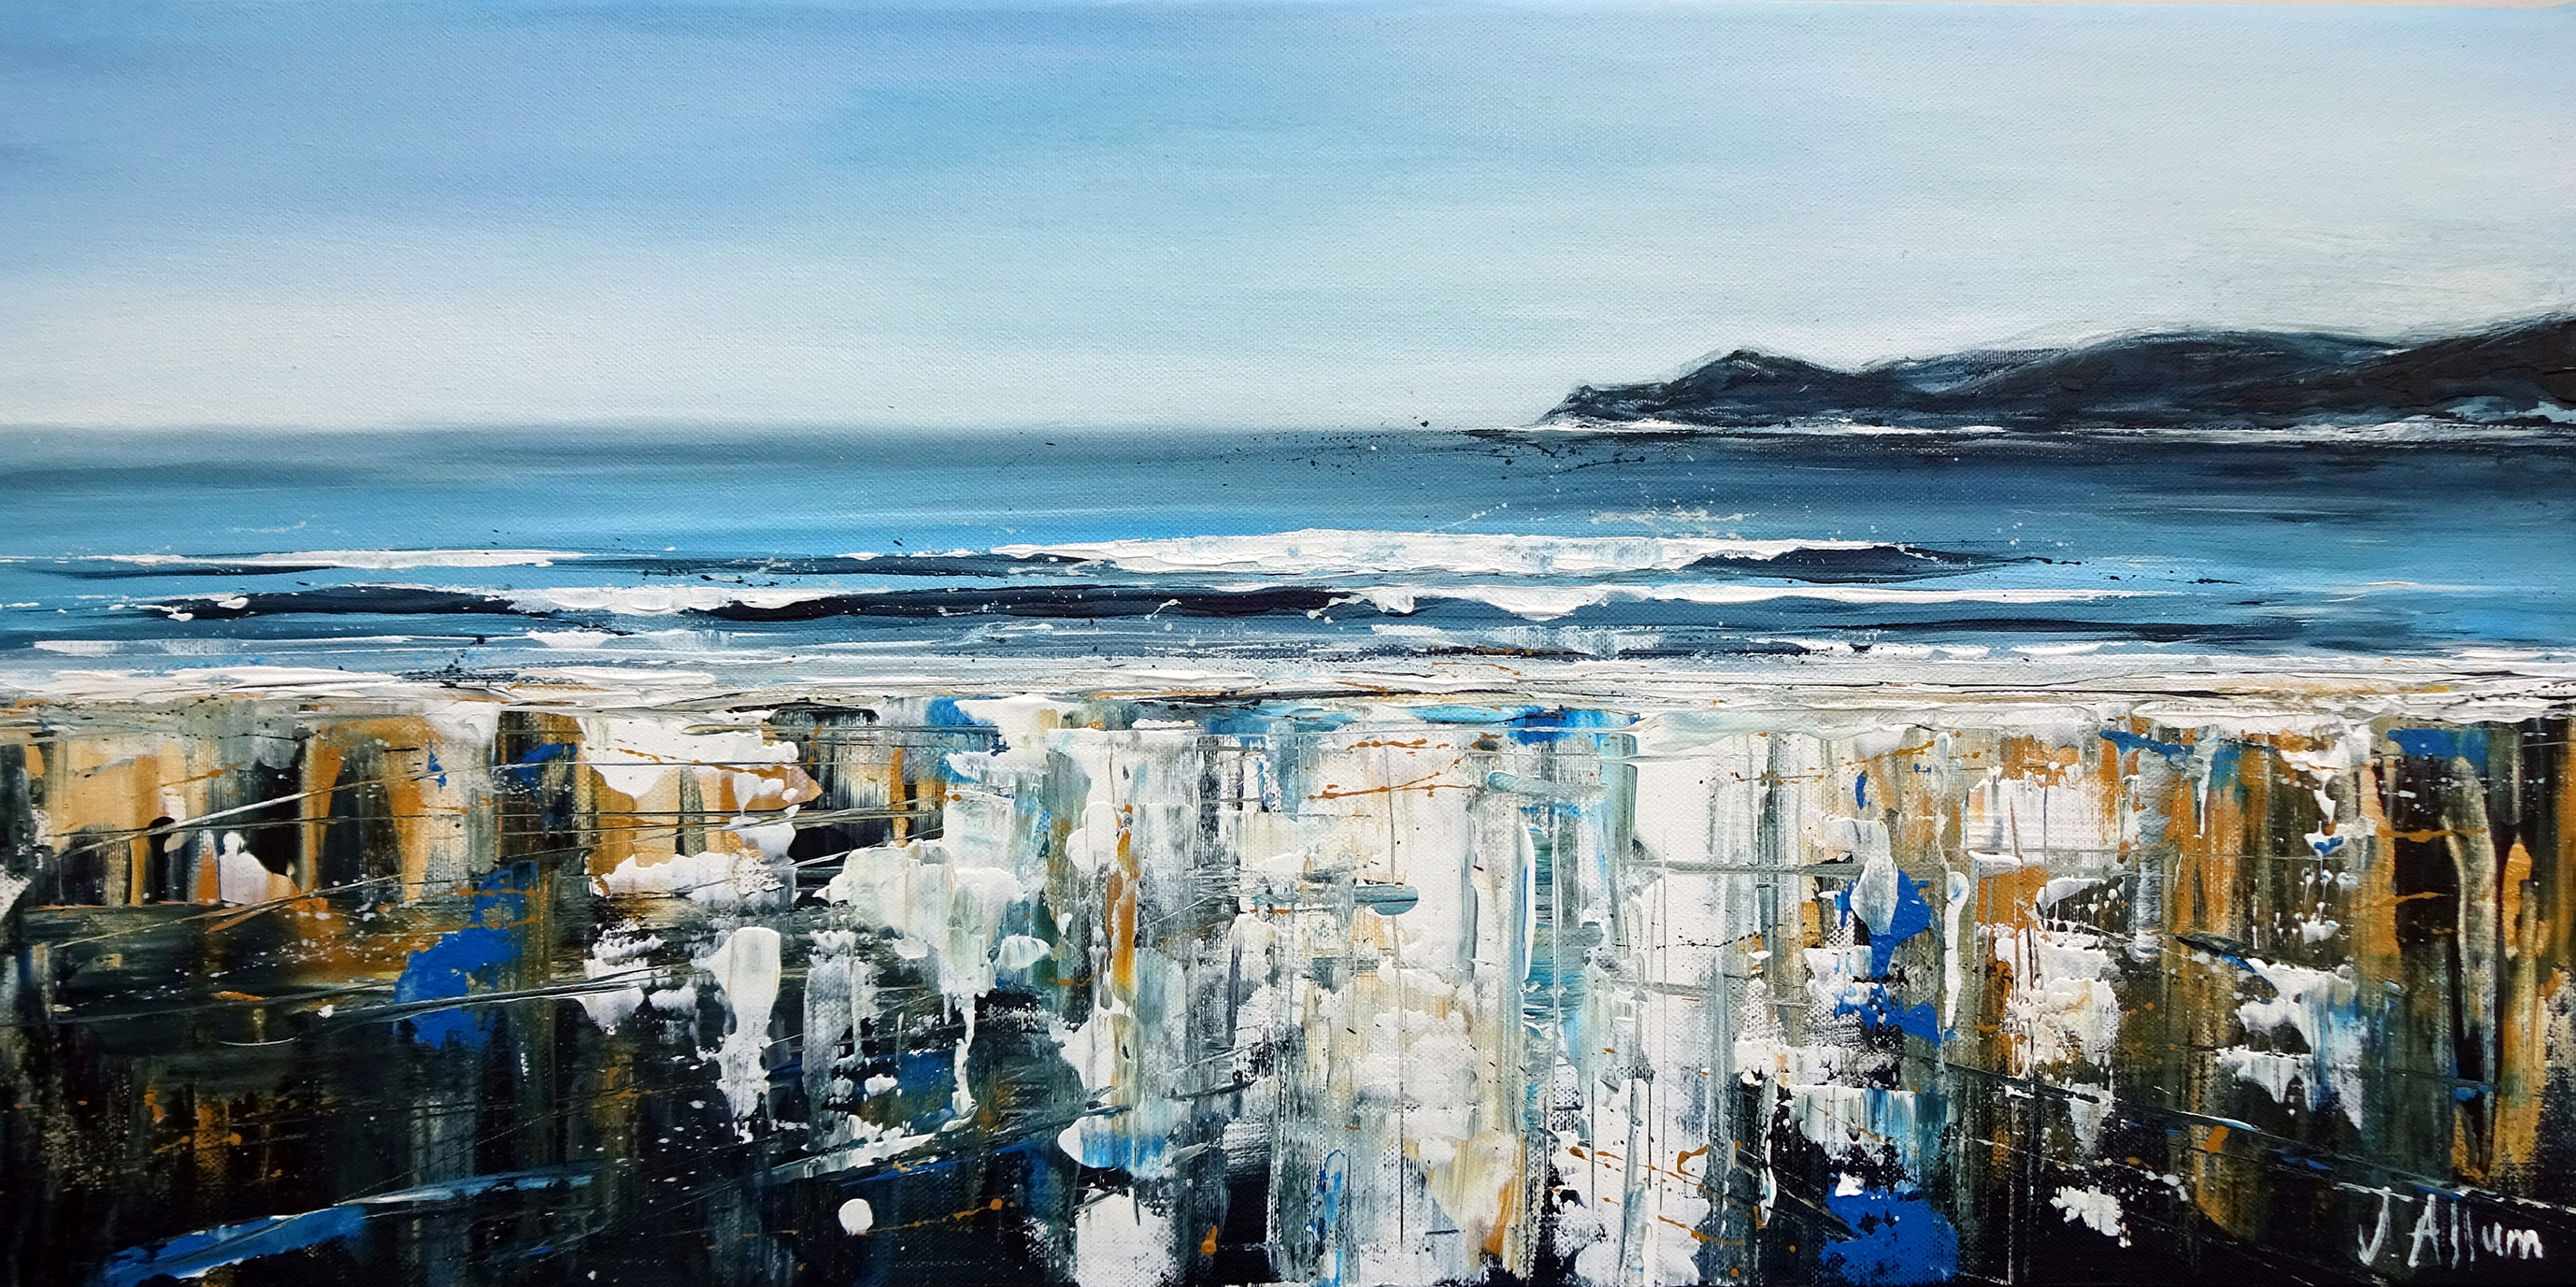 Art. Original painting by Jo Allum 'Morte blues'